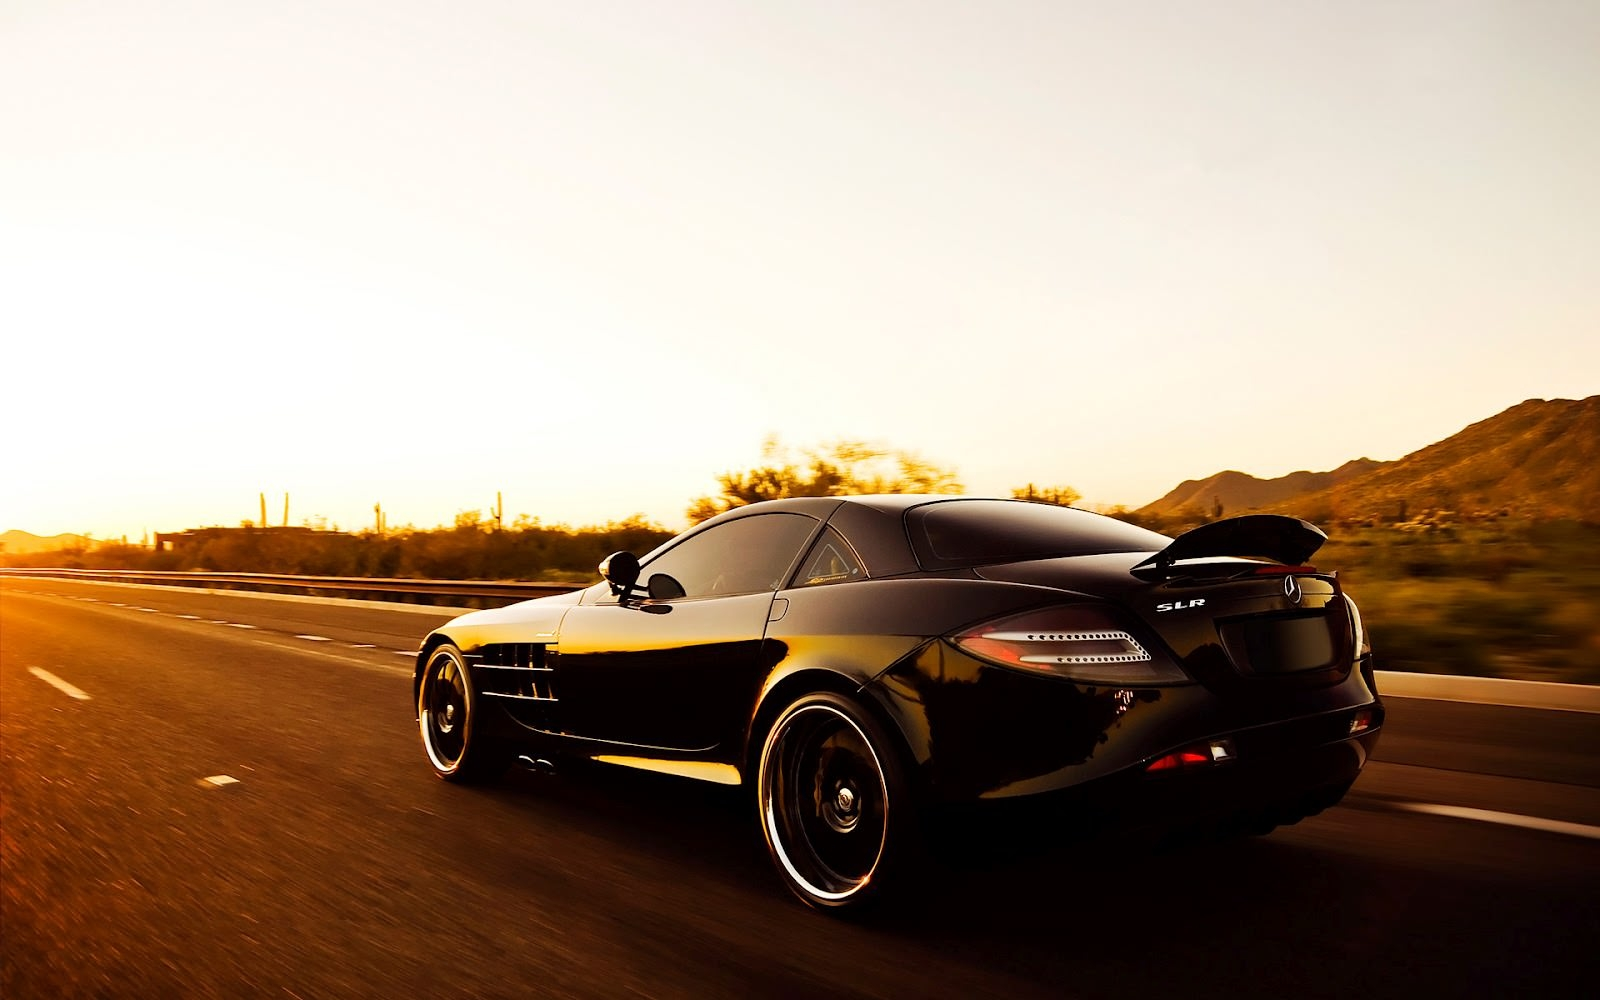 Black-Mercedes-Benz-SLR-Sunlights-Car-Wallpaper